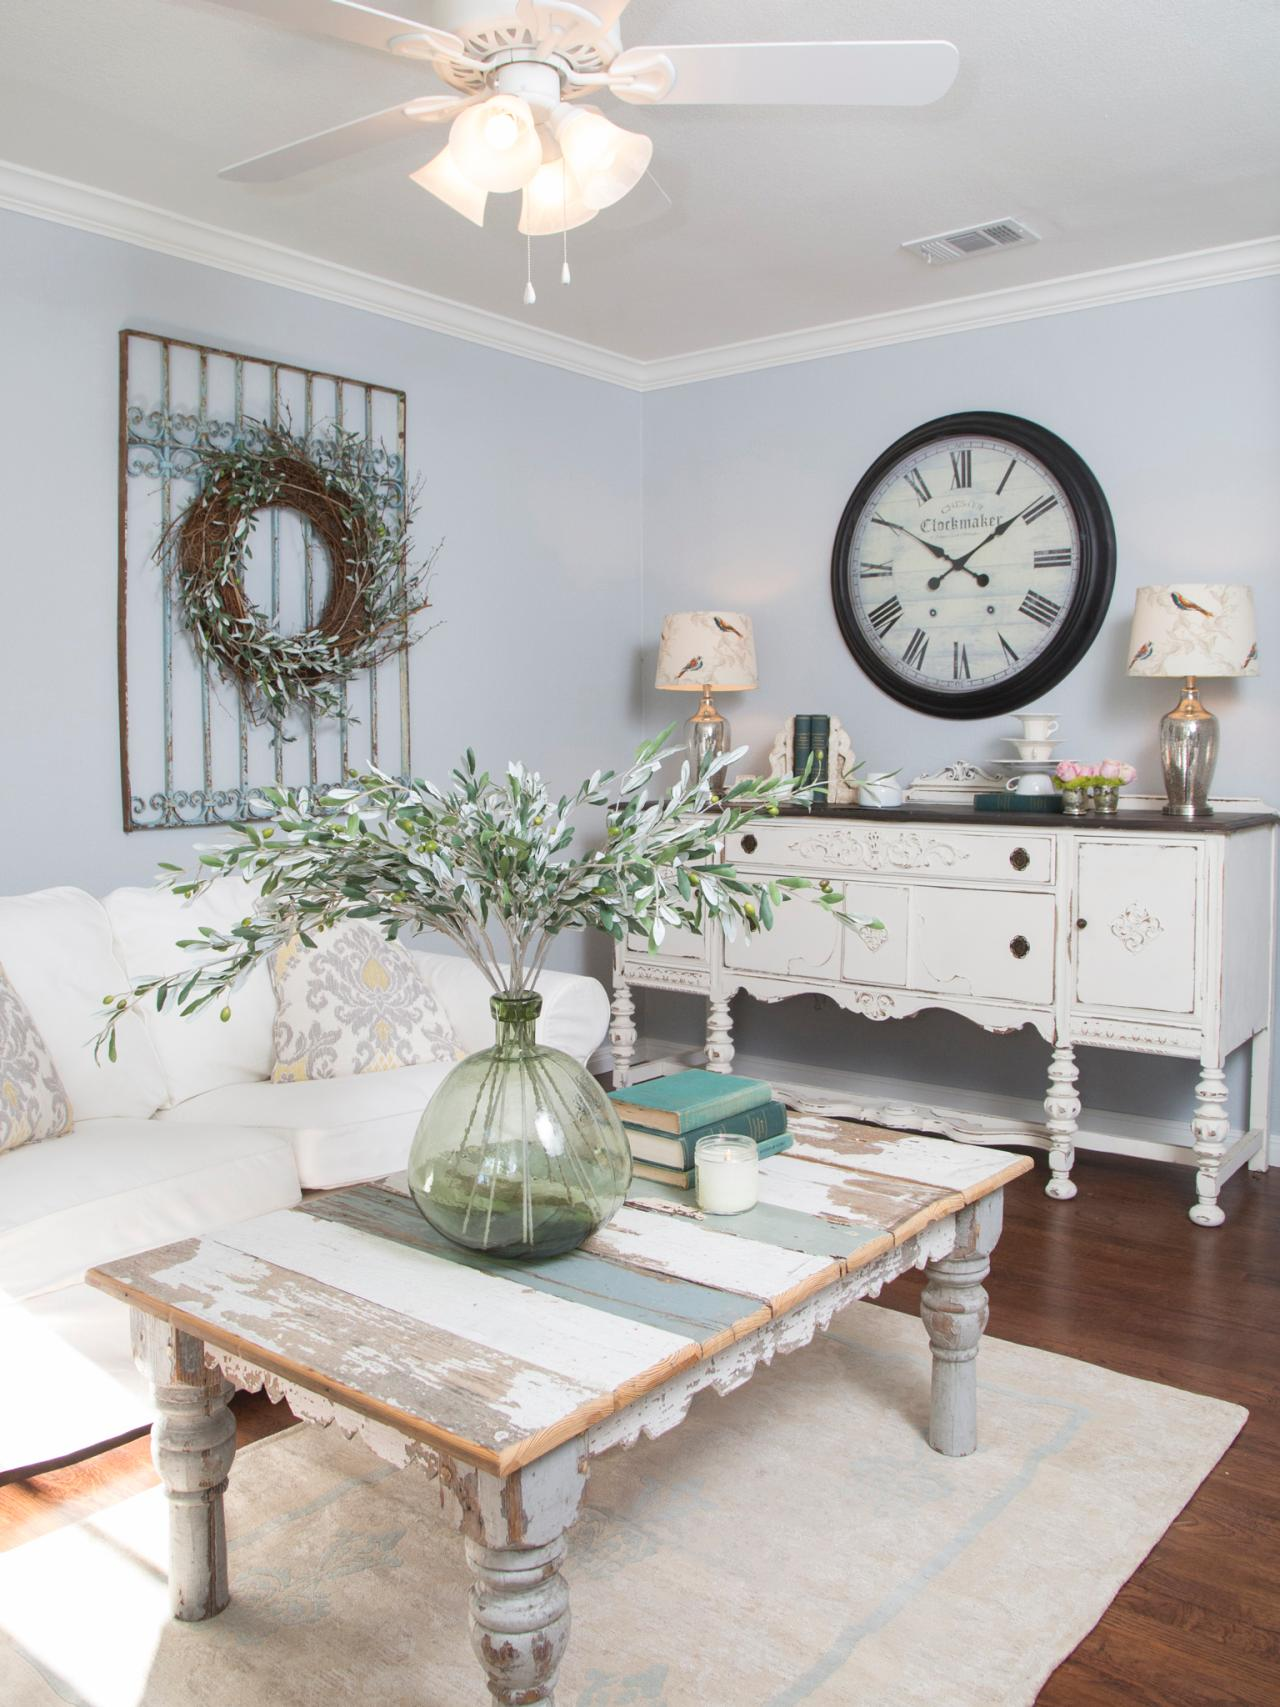 to Décor Your Living Room Best Clocks Best Clocks to Décor Your Living Room Best Clocks to D  cor Your Living Room2